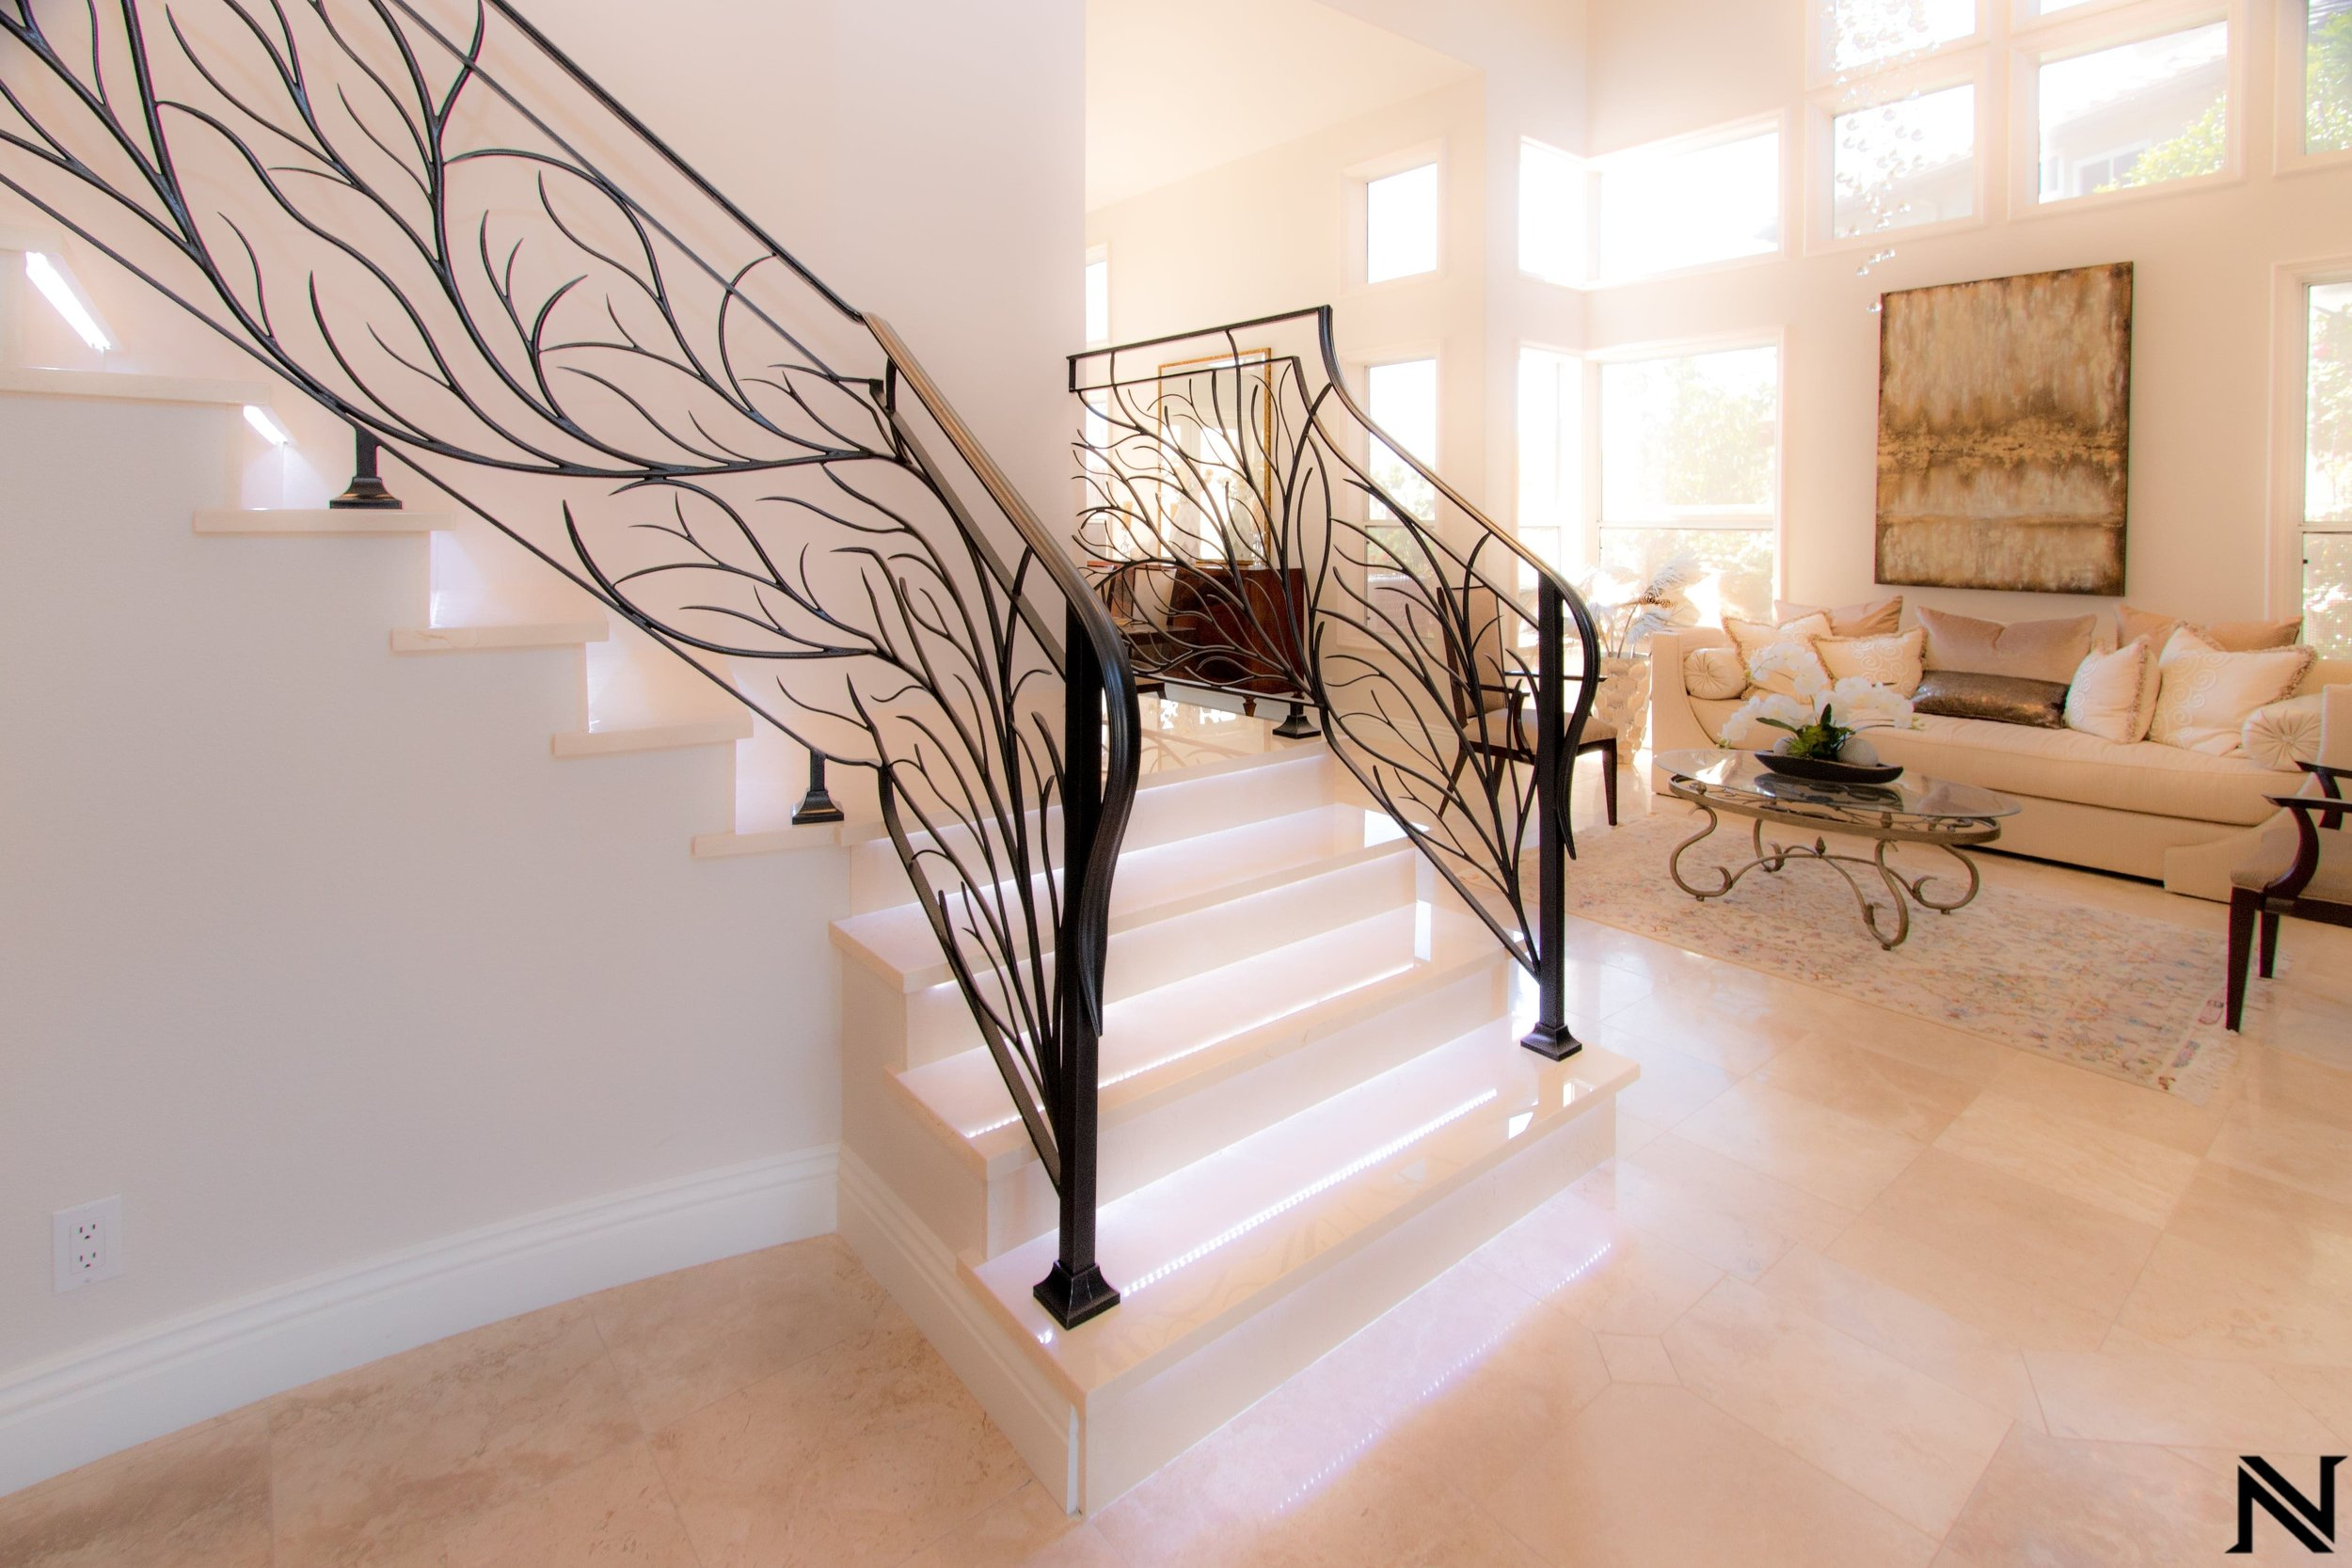 Naddour's Custom Metalworks Modern Staircase Railing Featured Project 5.jpg